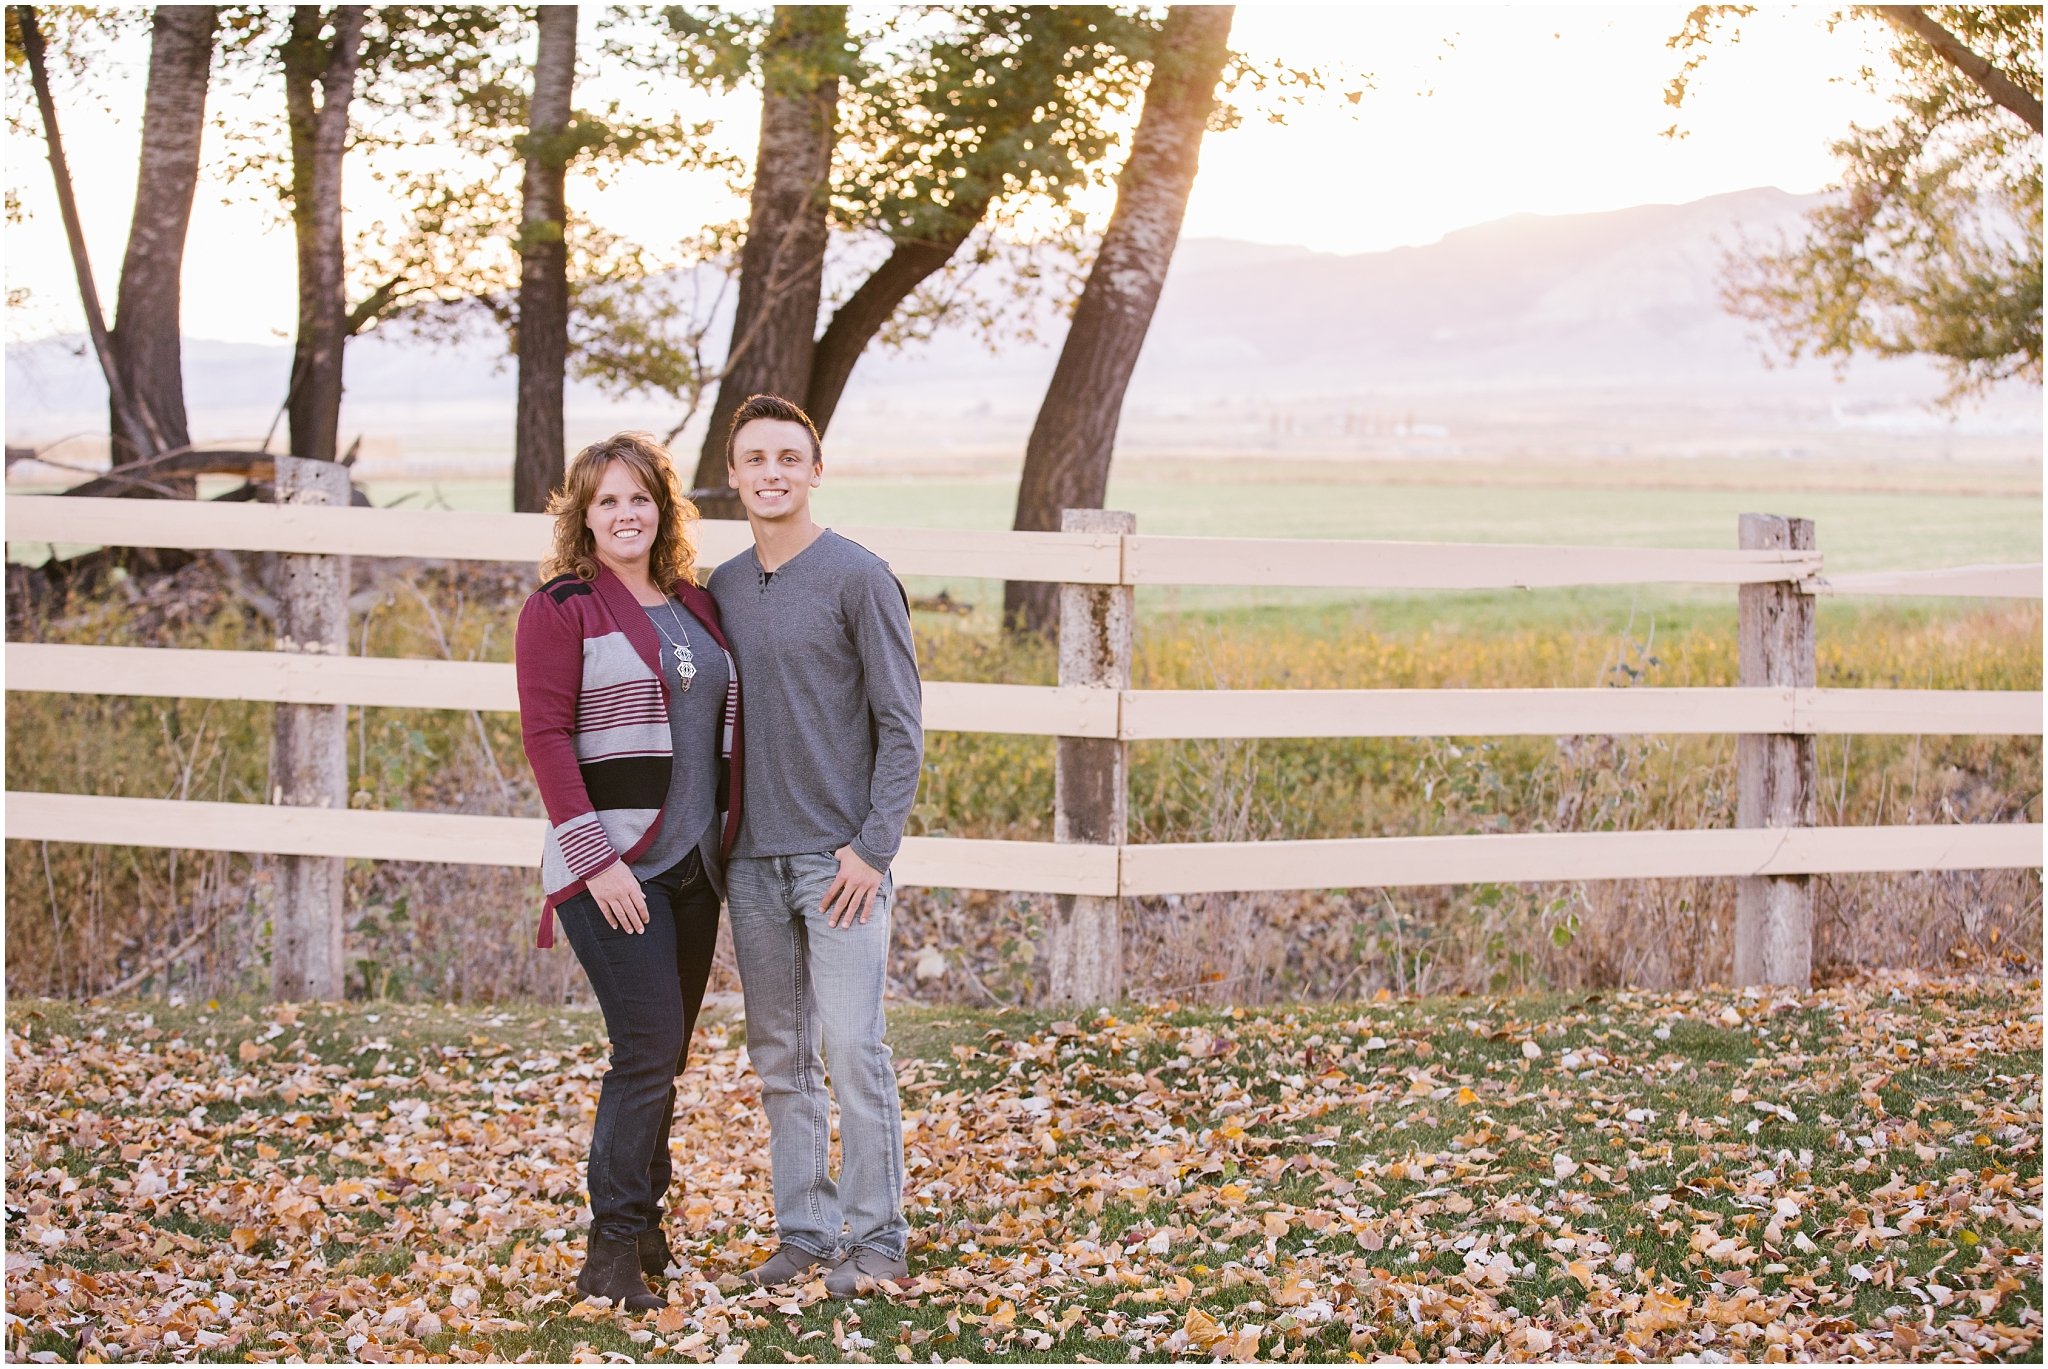 Fielding-51_Lizzie-B-Imagery-Utah-Family-Photographer-Central-Utah-Park-City-Salt-Lake-City.jpg